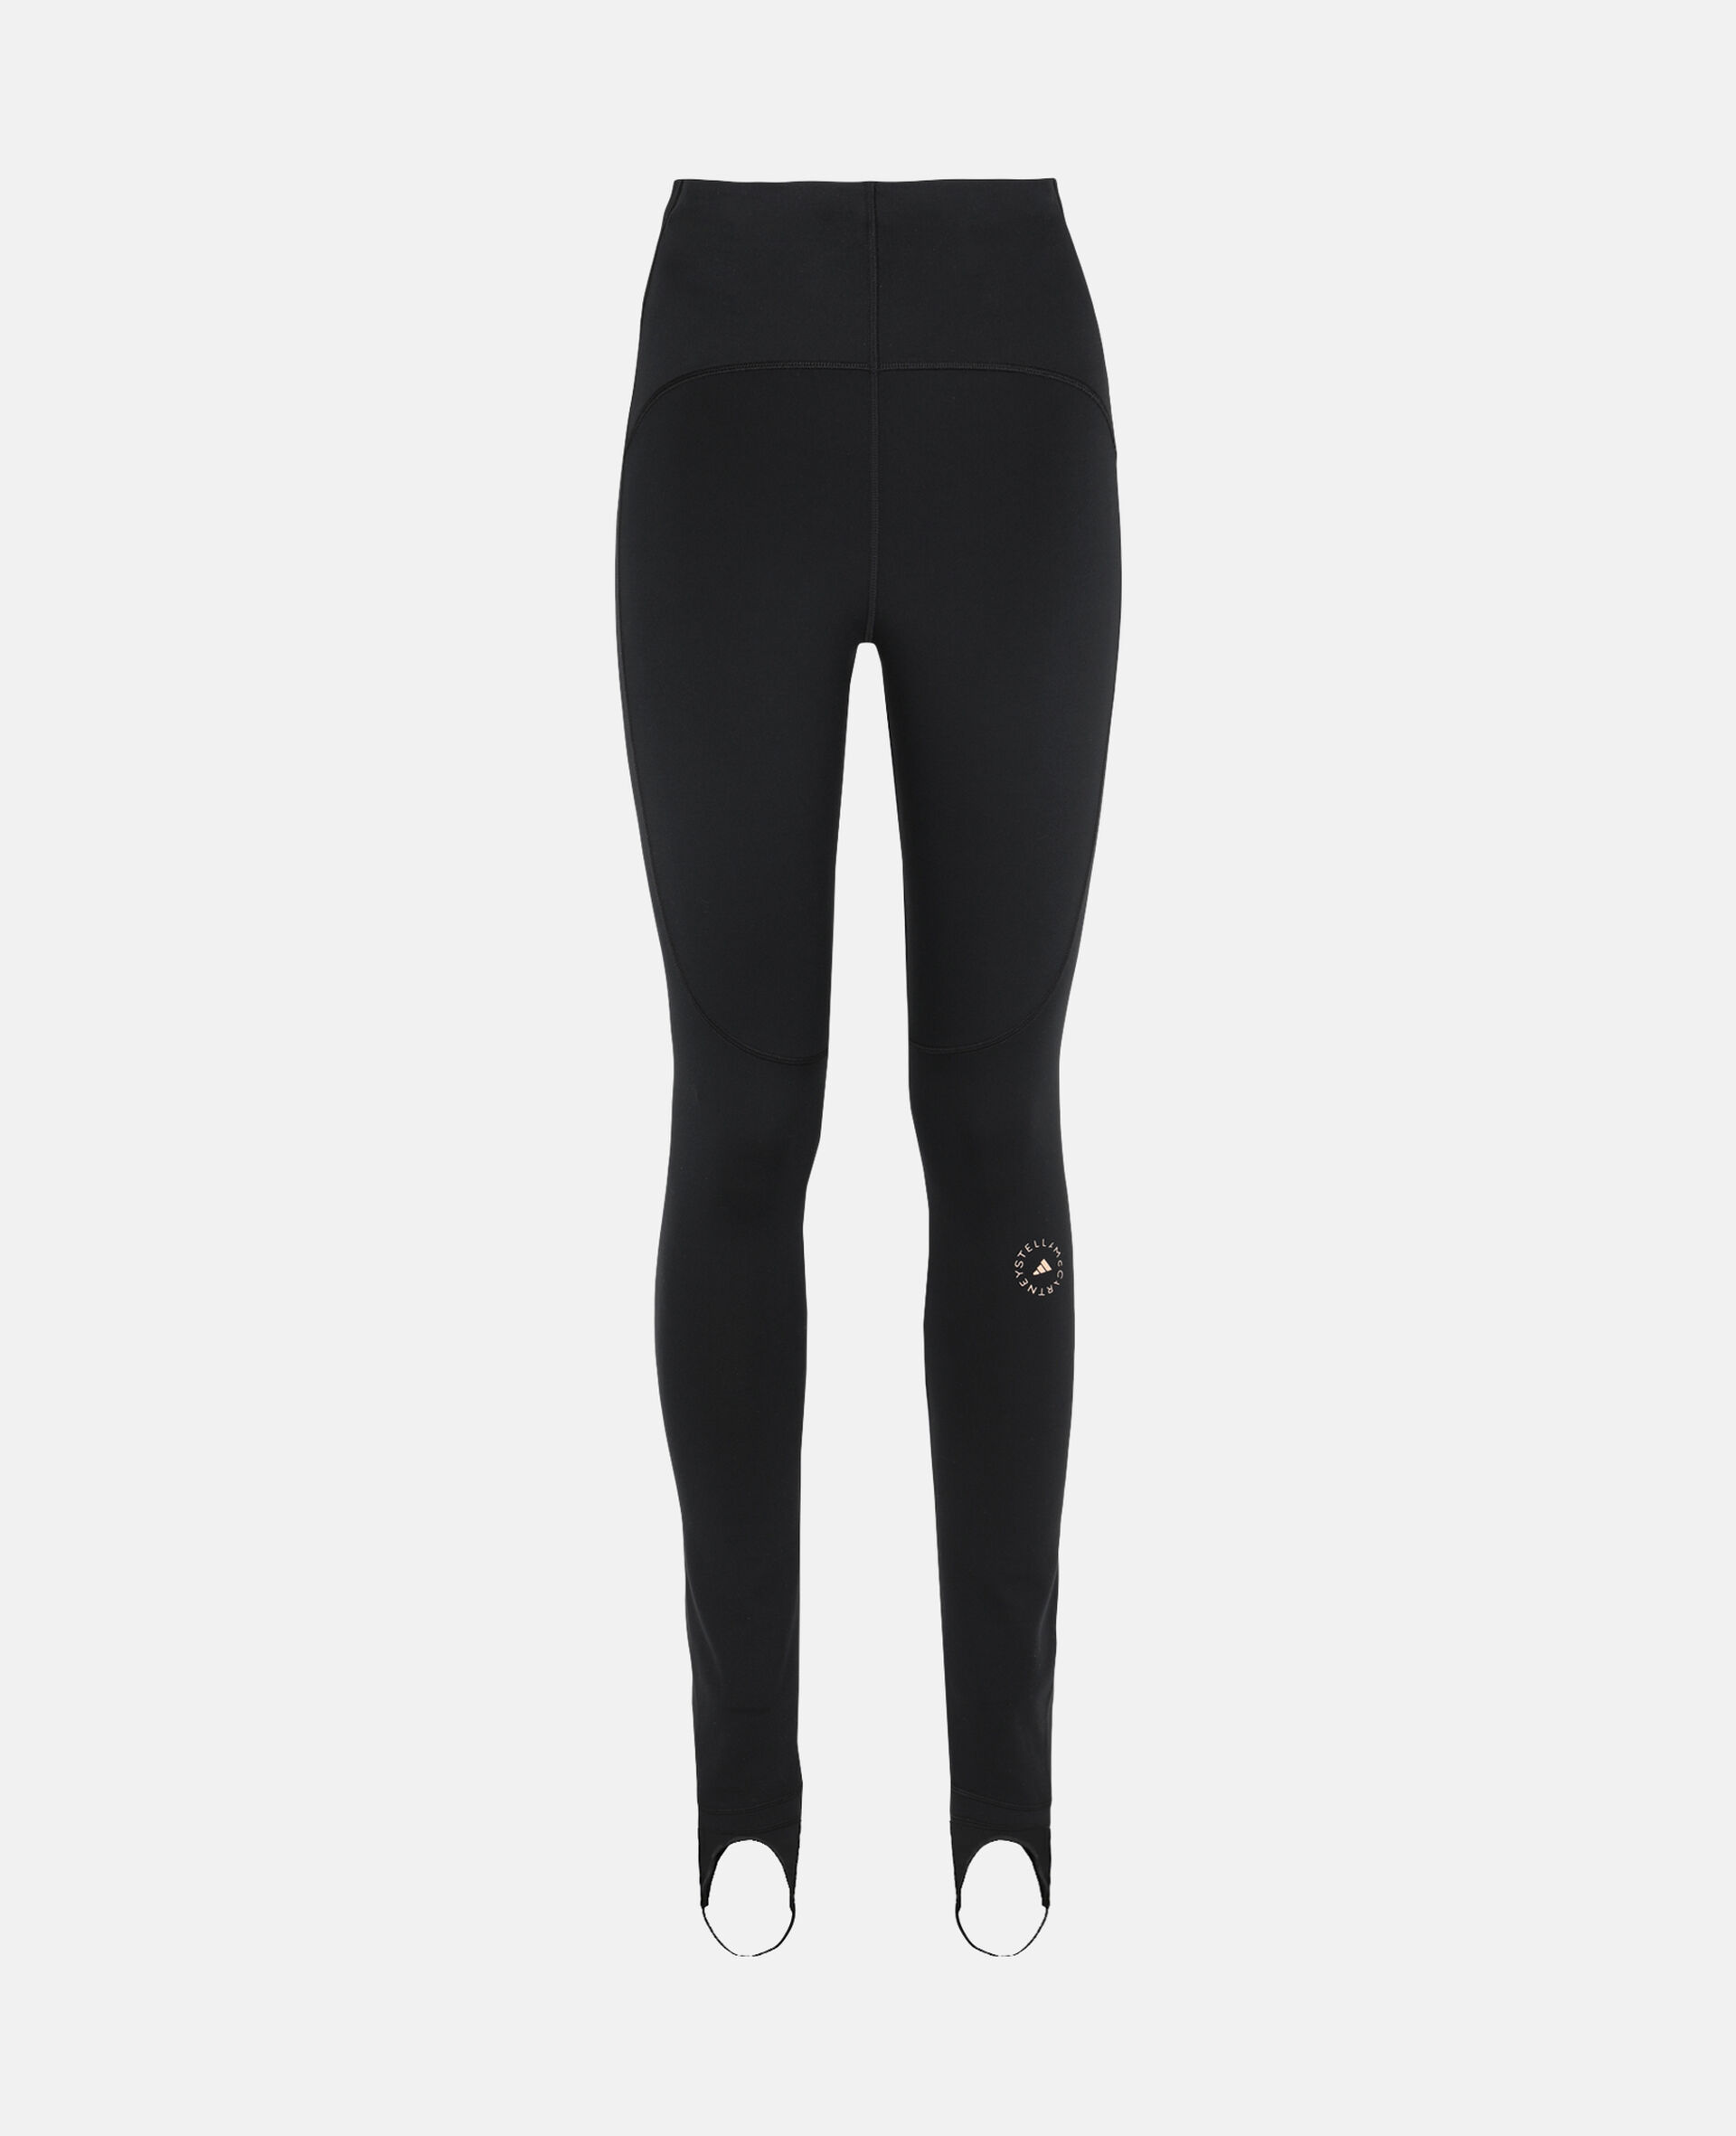 TrueStrength Yoga Tights-Black-large image number 0